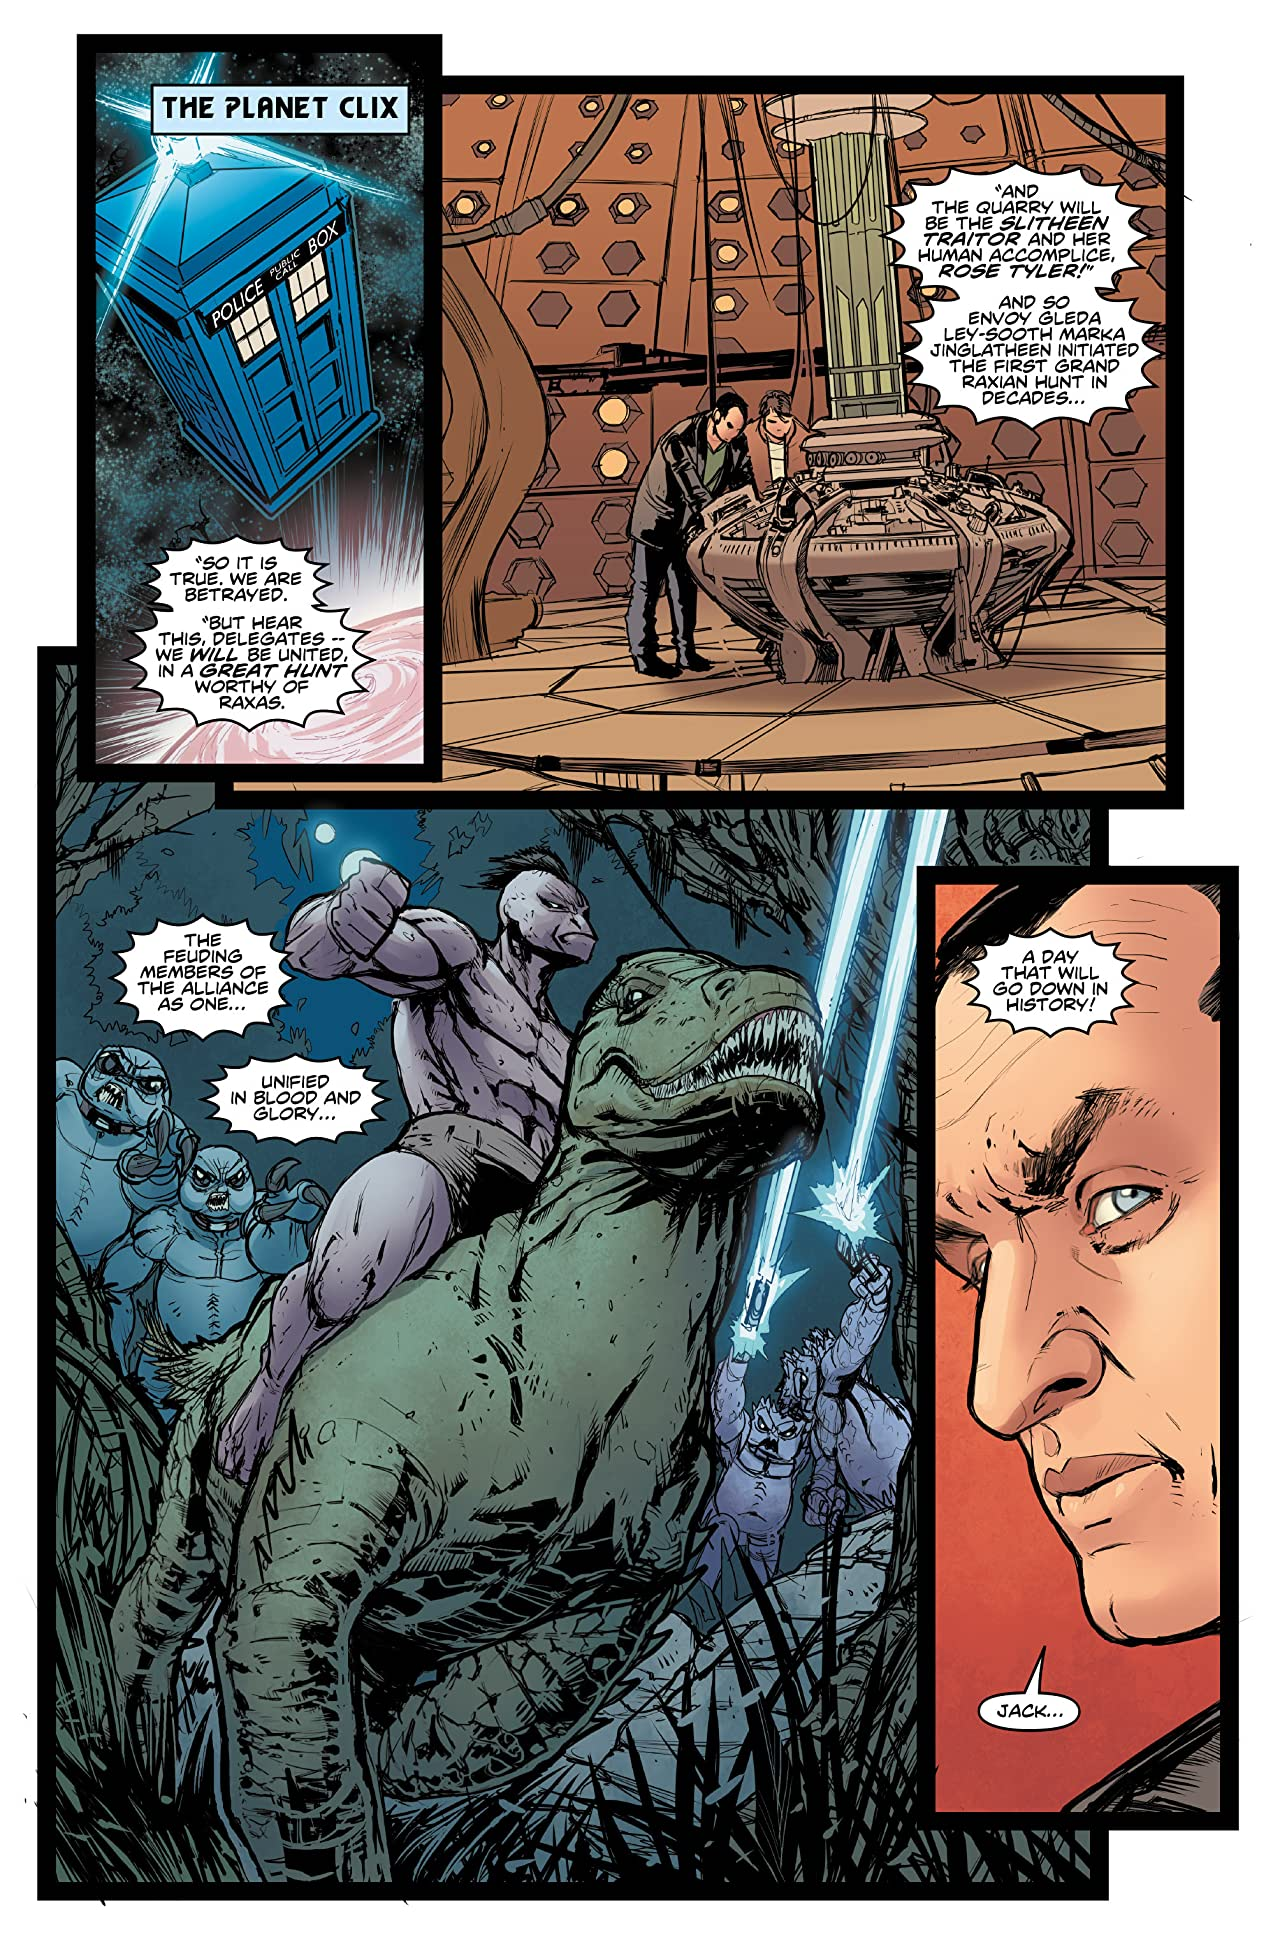 Doctor Who: The Ninth Doctor #2.3